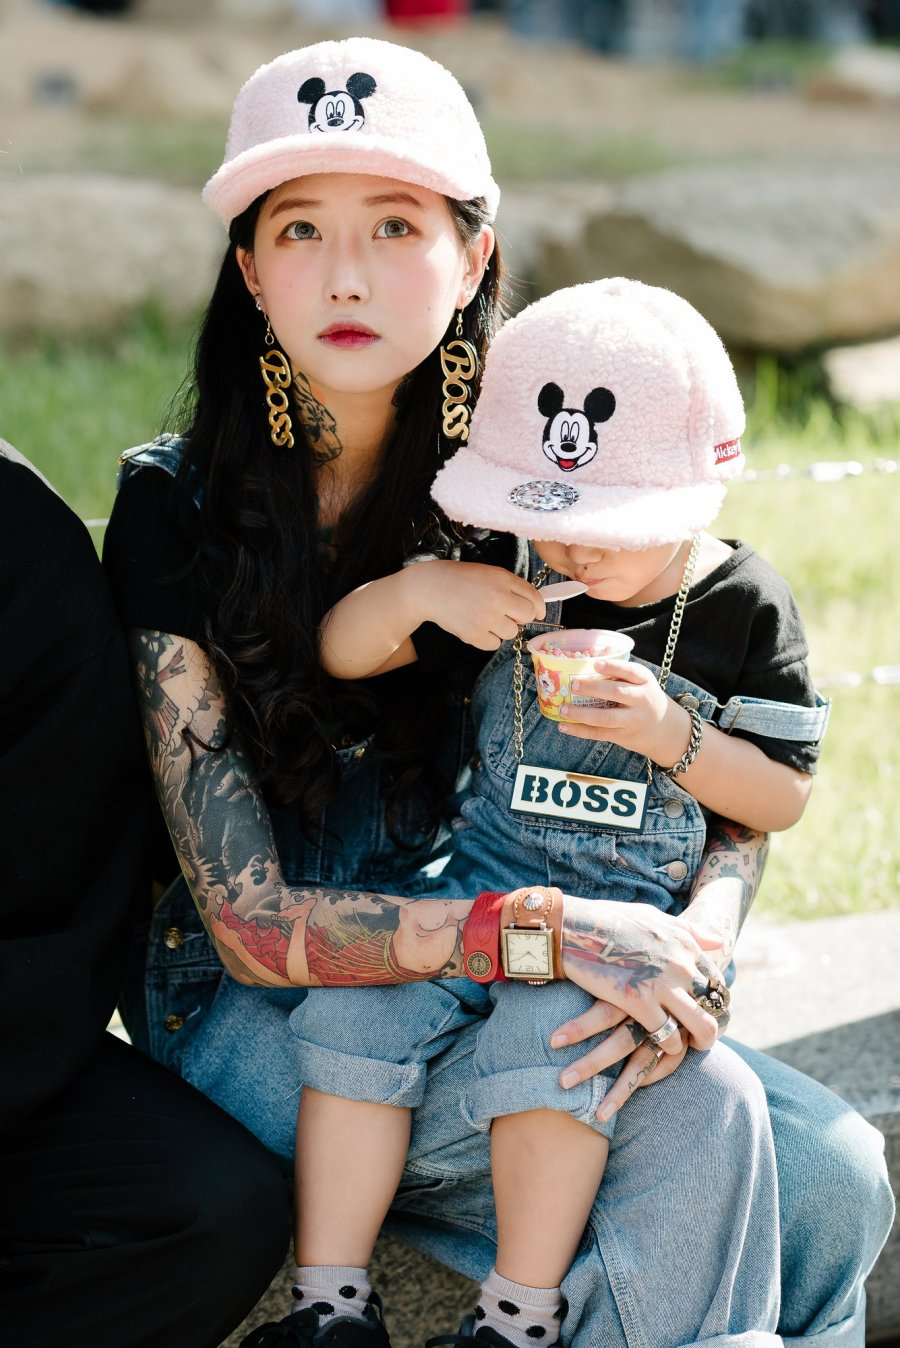 seoul-fashion-week-babies-street-style-12